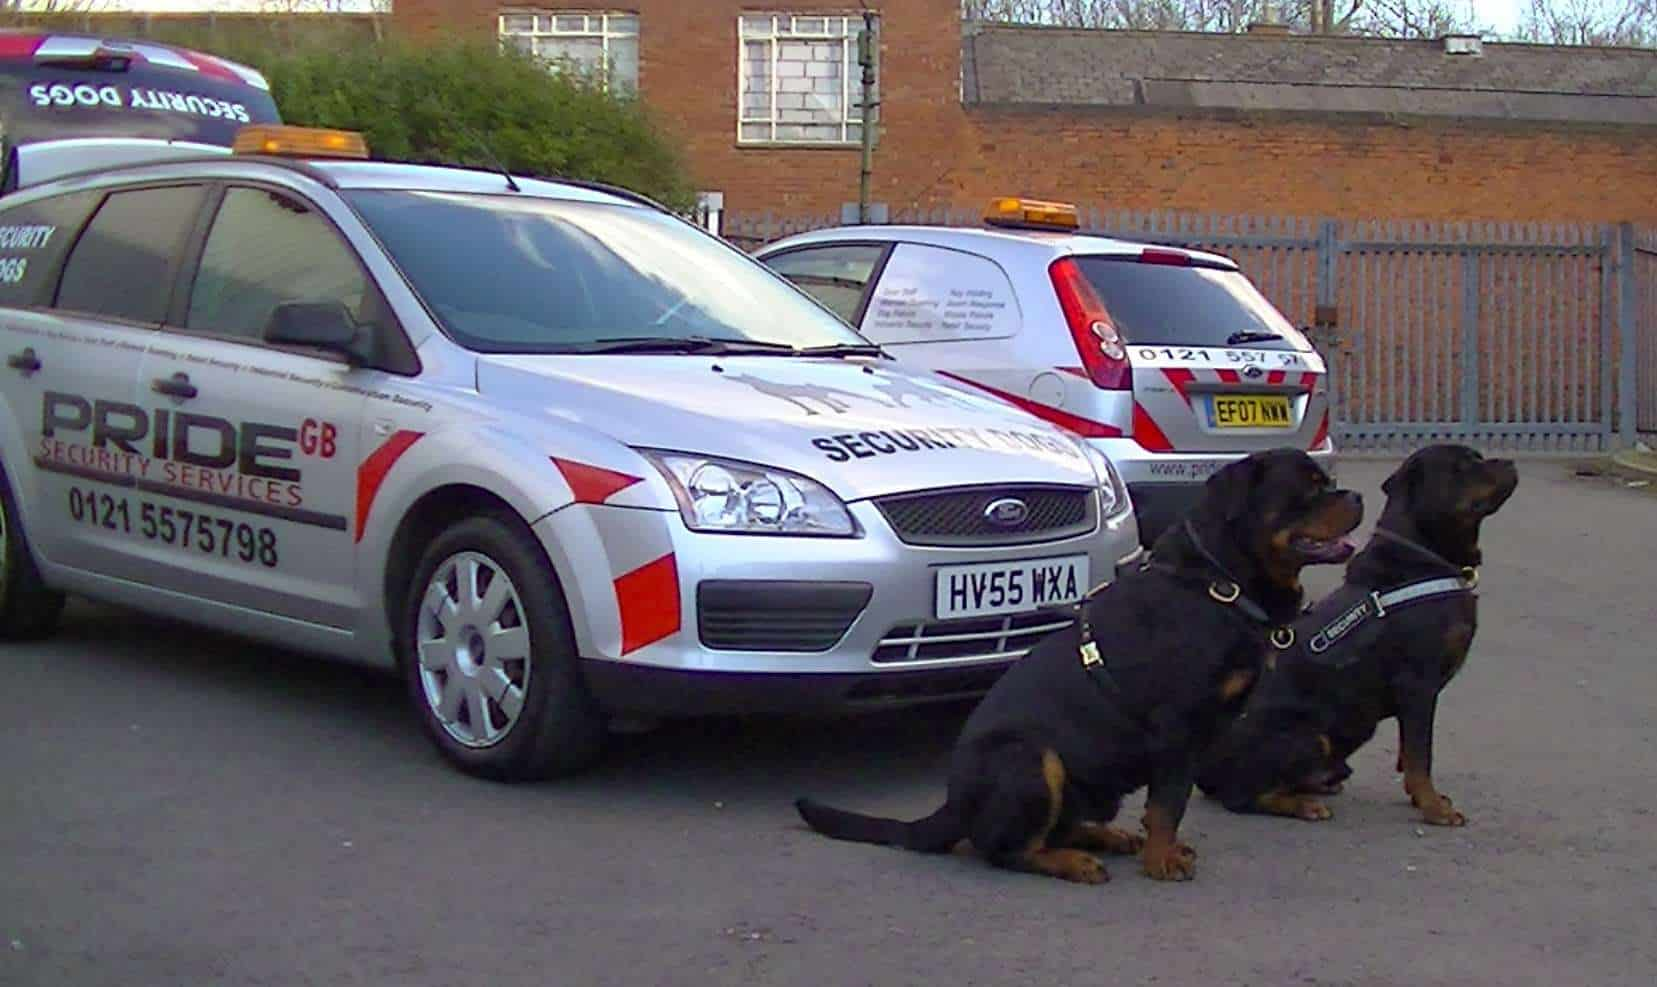 k9 security worcestershire